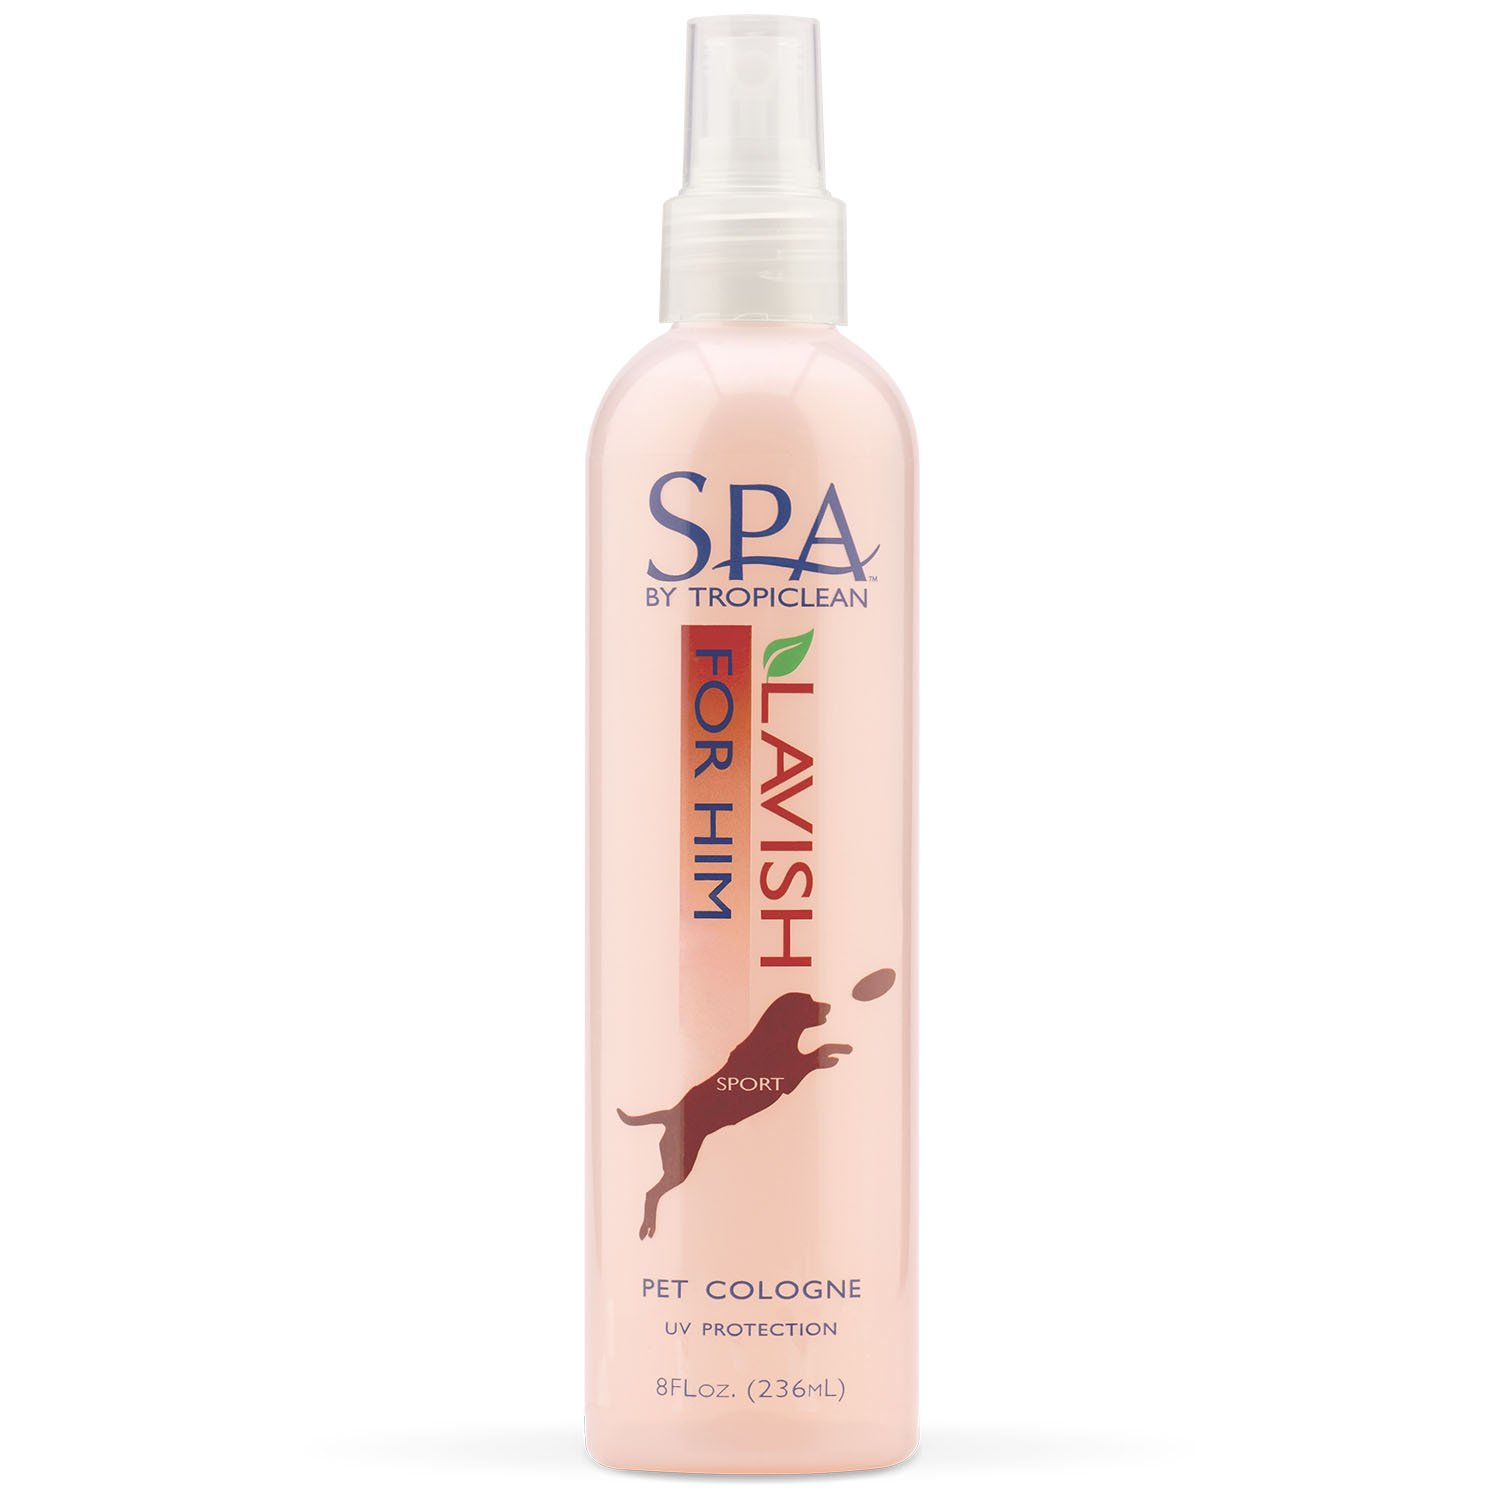 SPA by TropiClean For Him Pet Cologne, 8oz